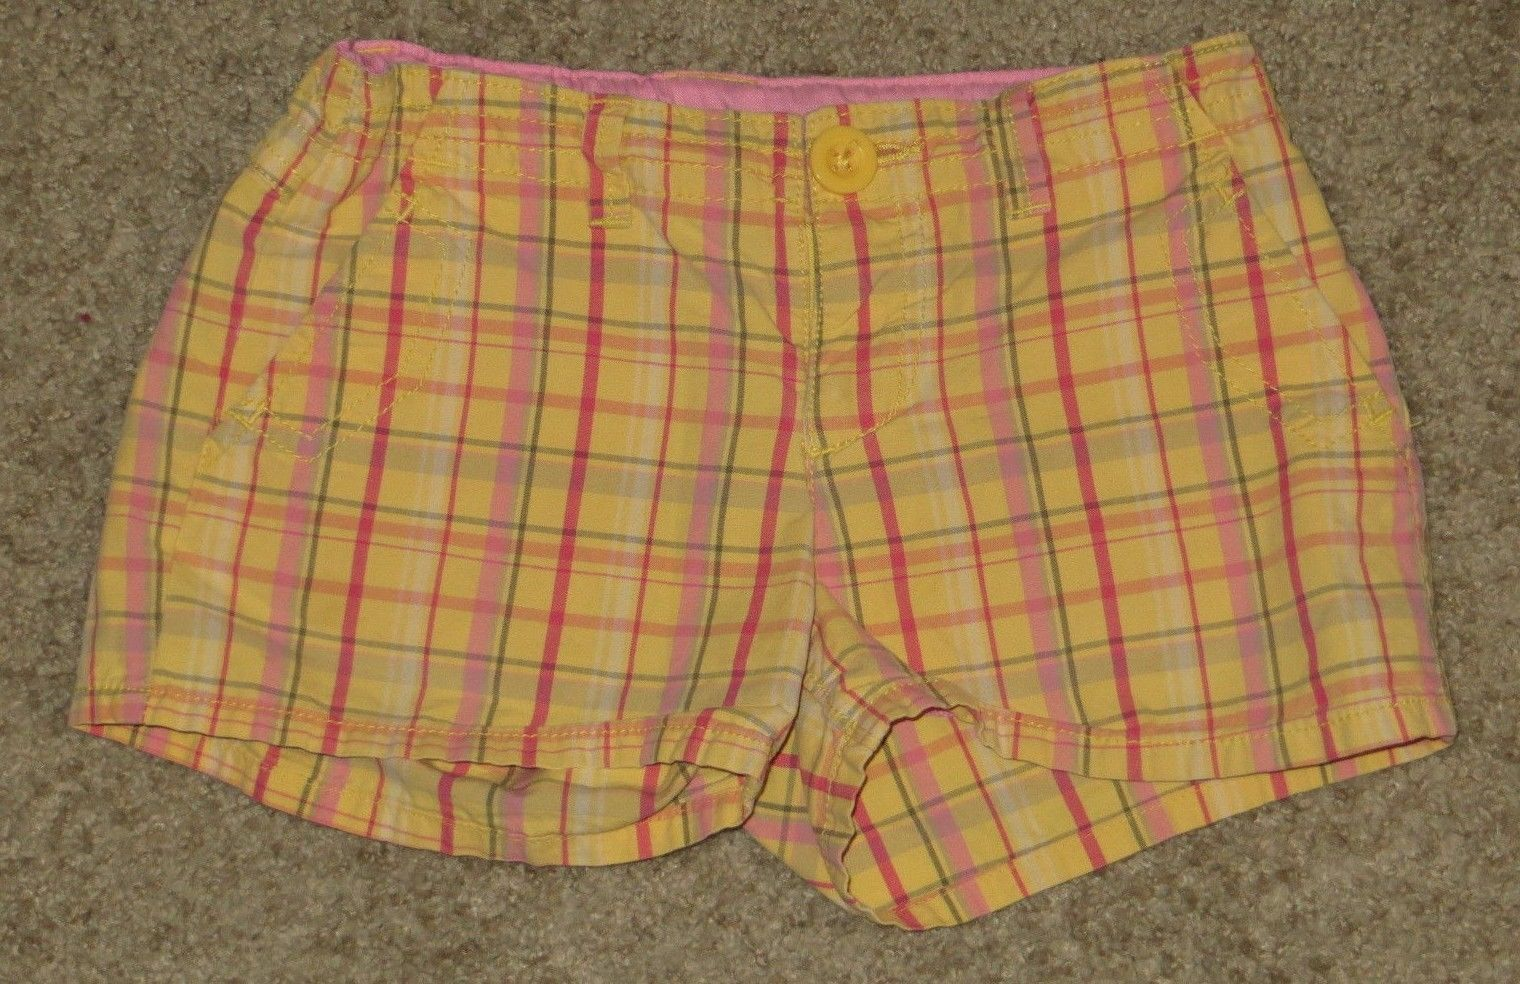 EUC Gap Kids Yellow Pink Green Plaid Shorts Size 8R 8 Regular